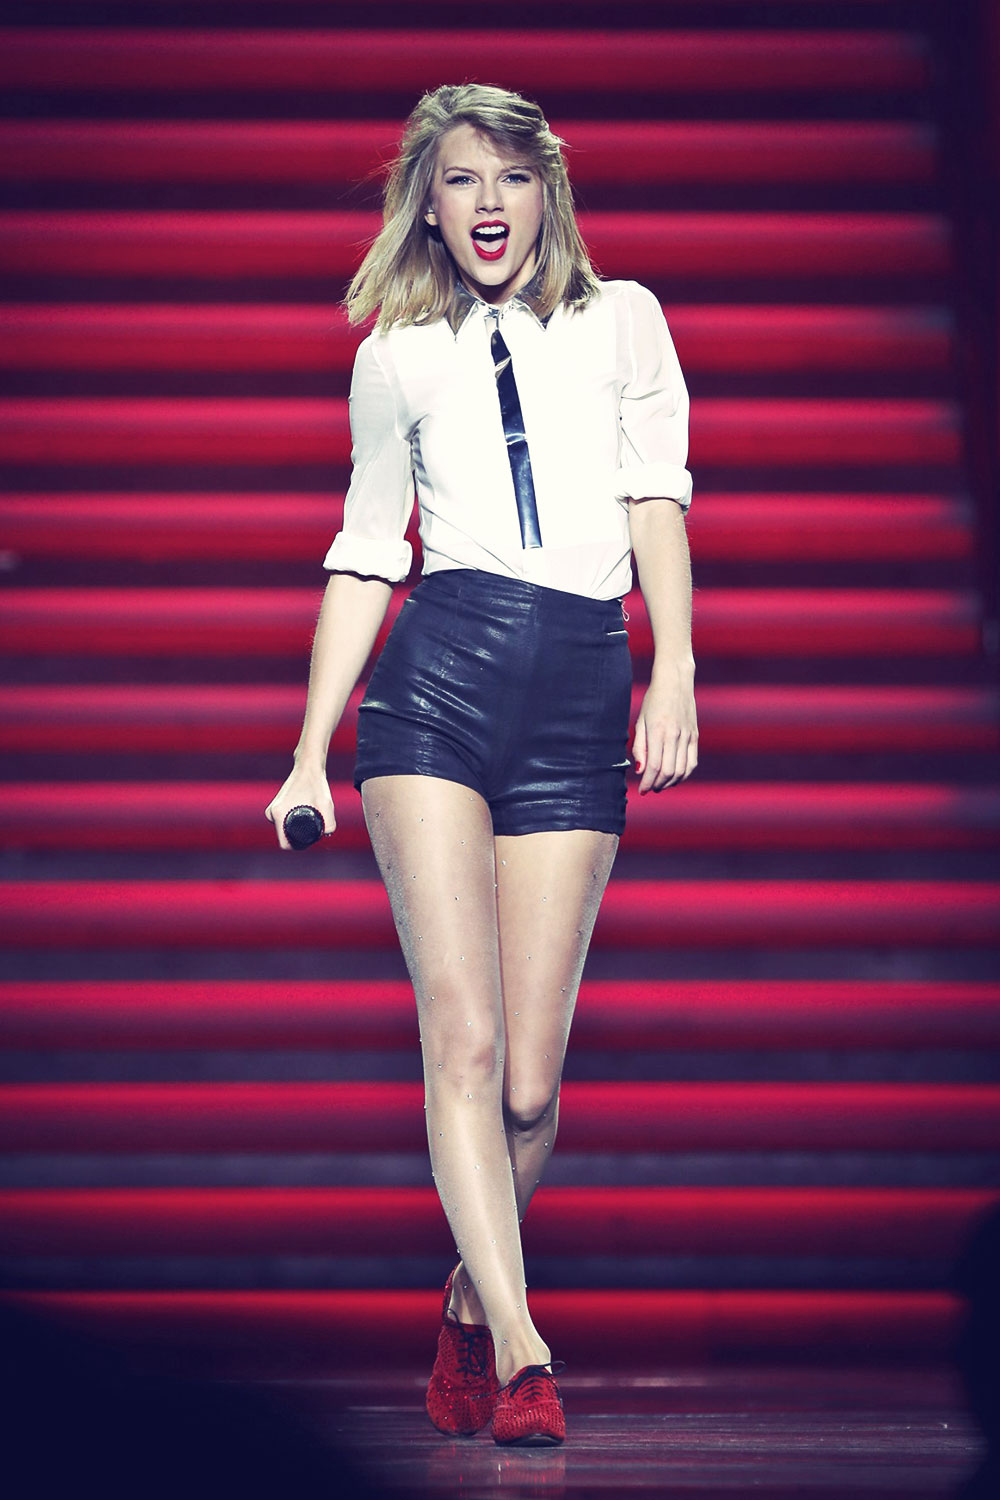 Taylor Swift performing in Shanghai